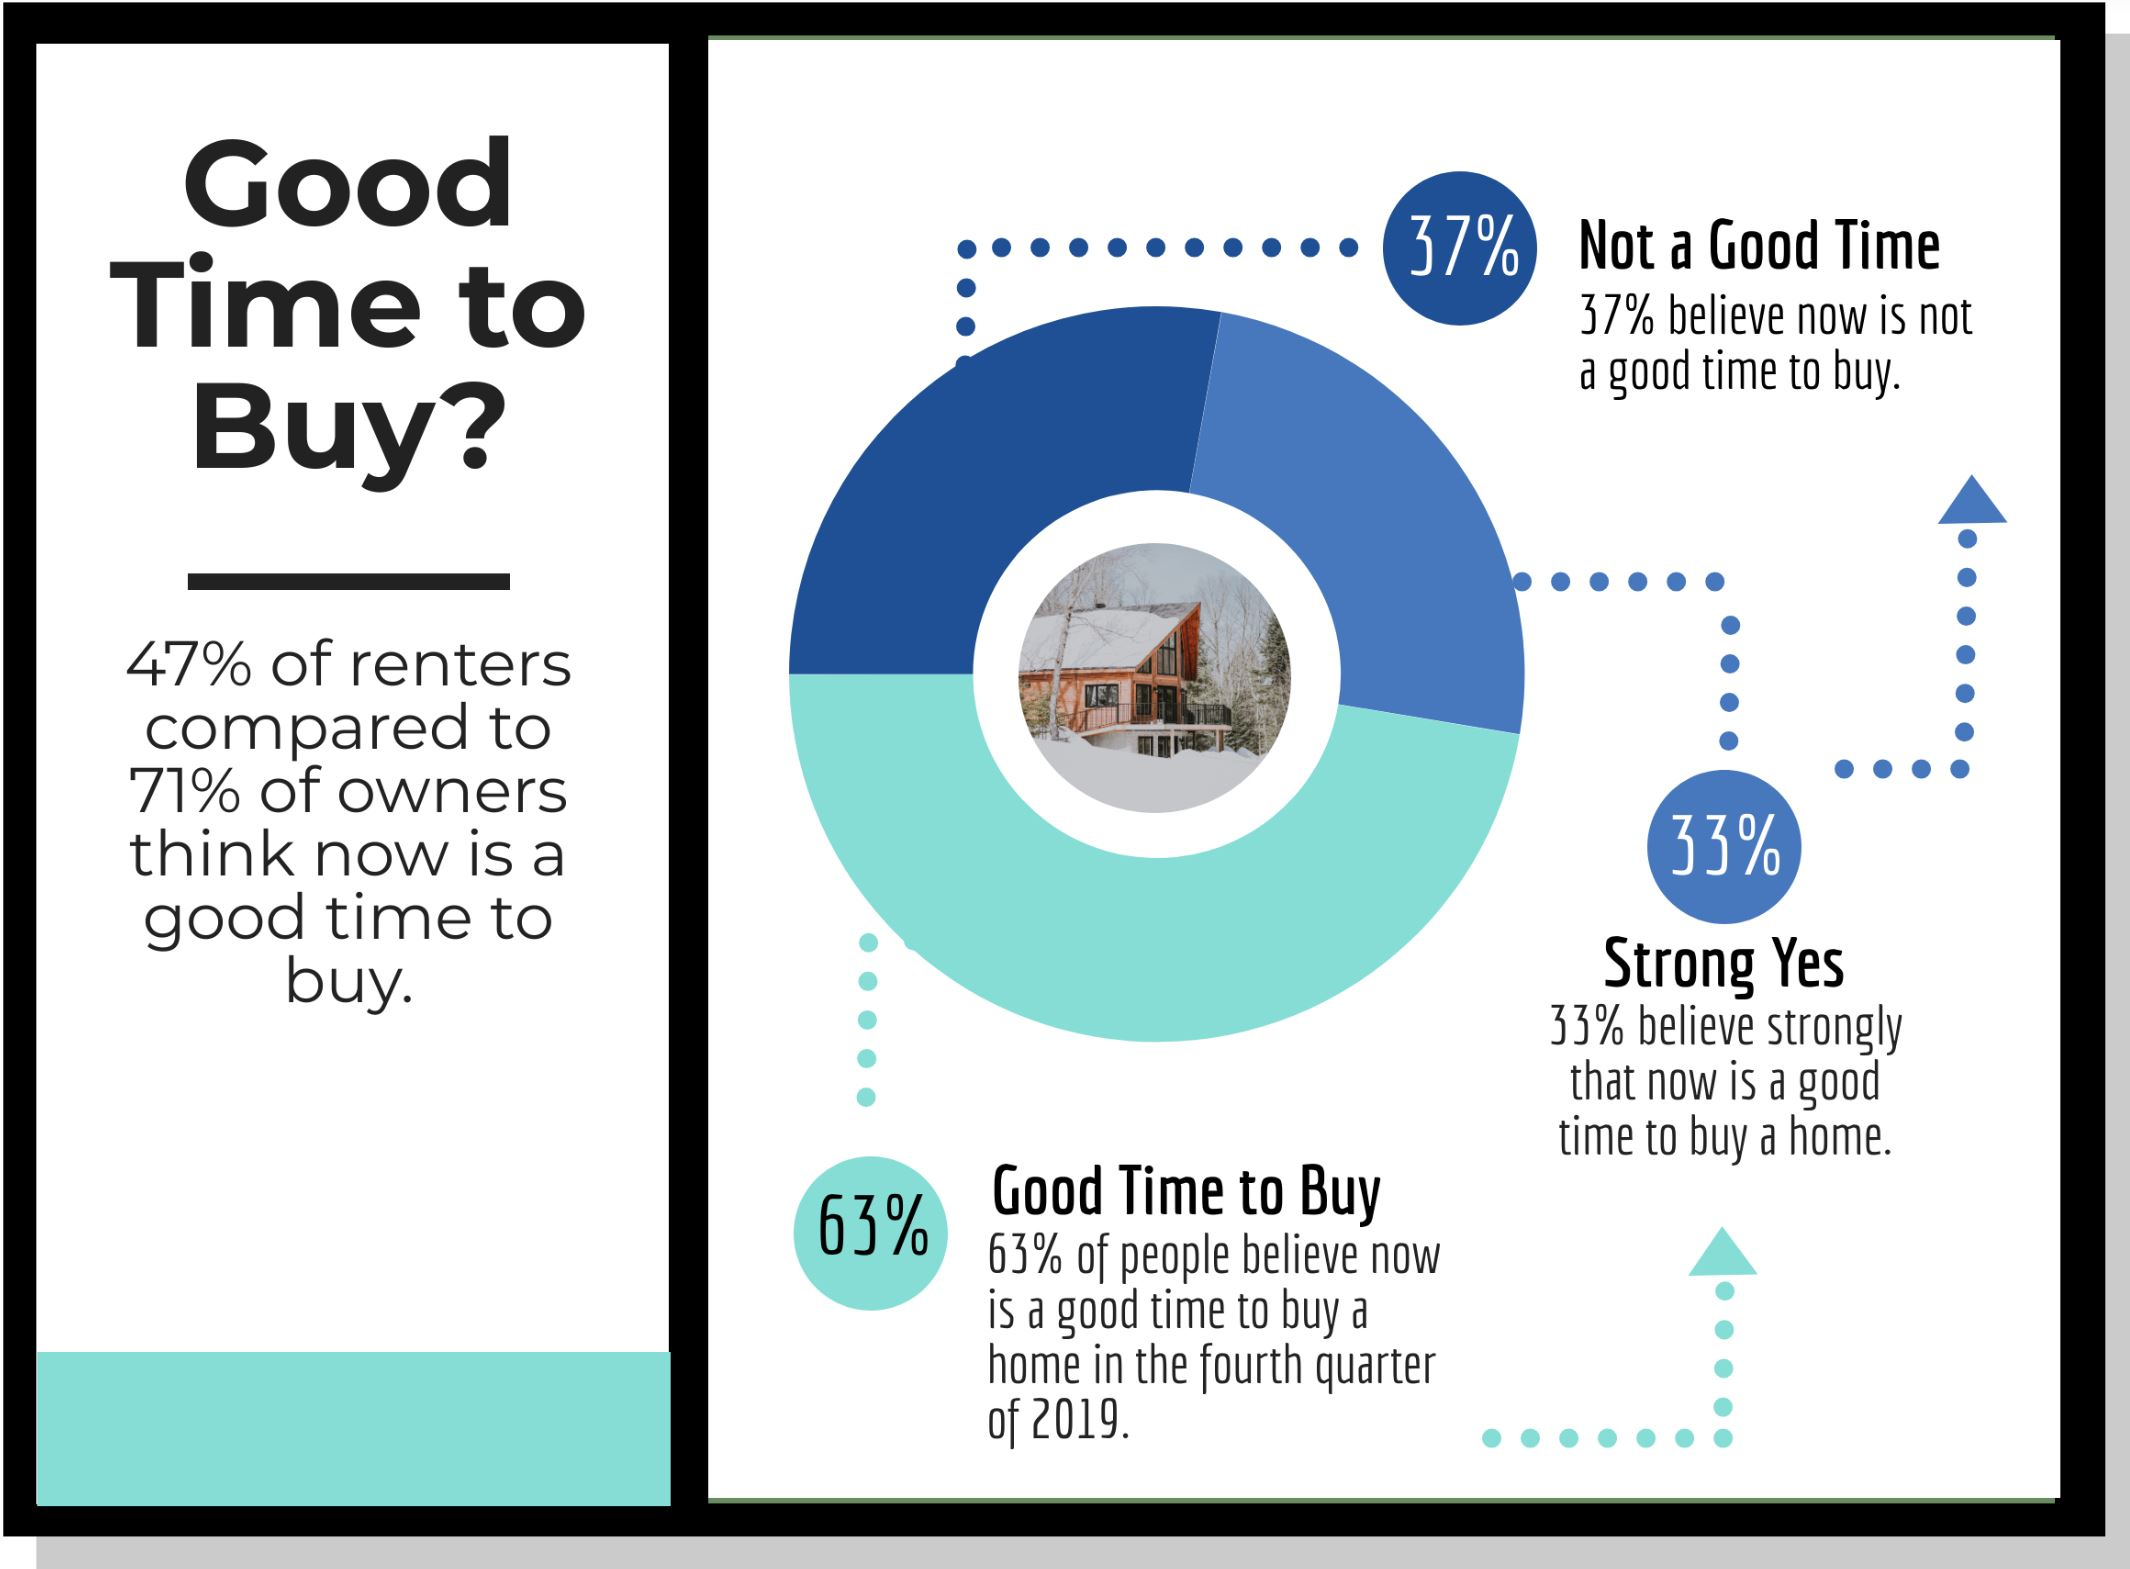 Realtor Magazine Jan 2020 Home Survey January 2020 Good time to Buy Hoey Team eXp Realty